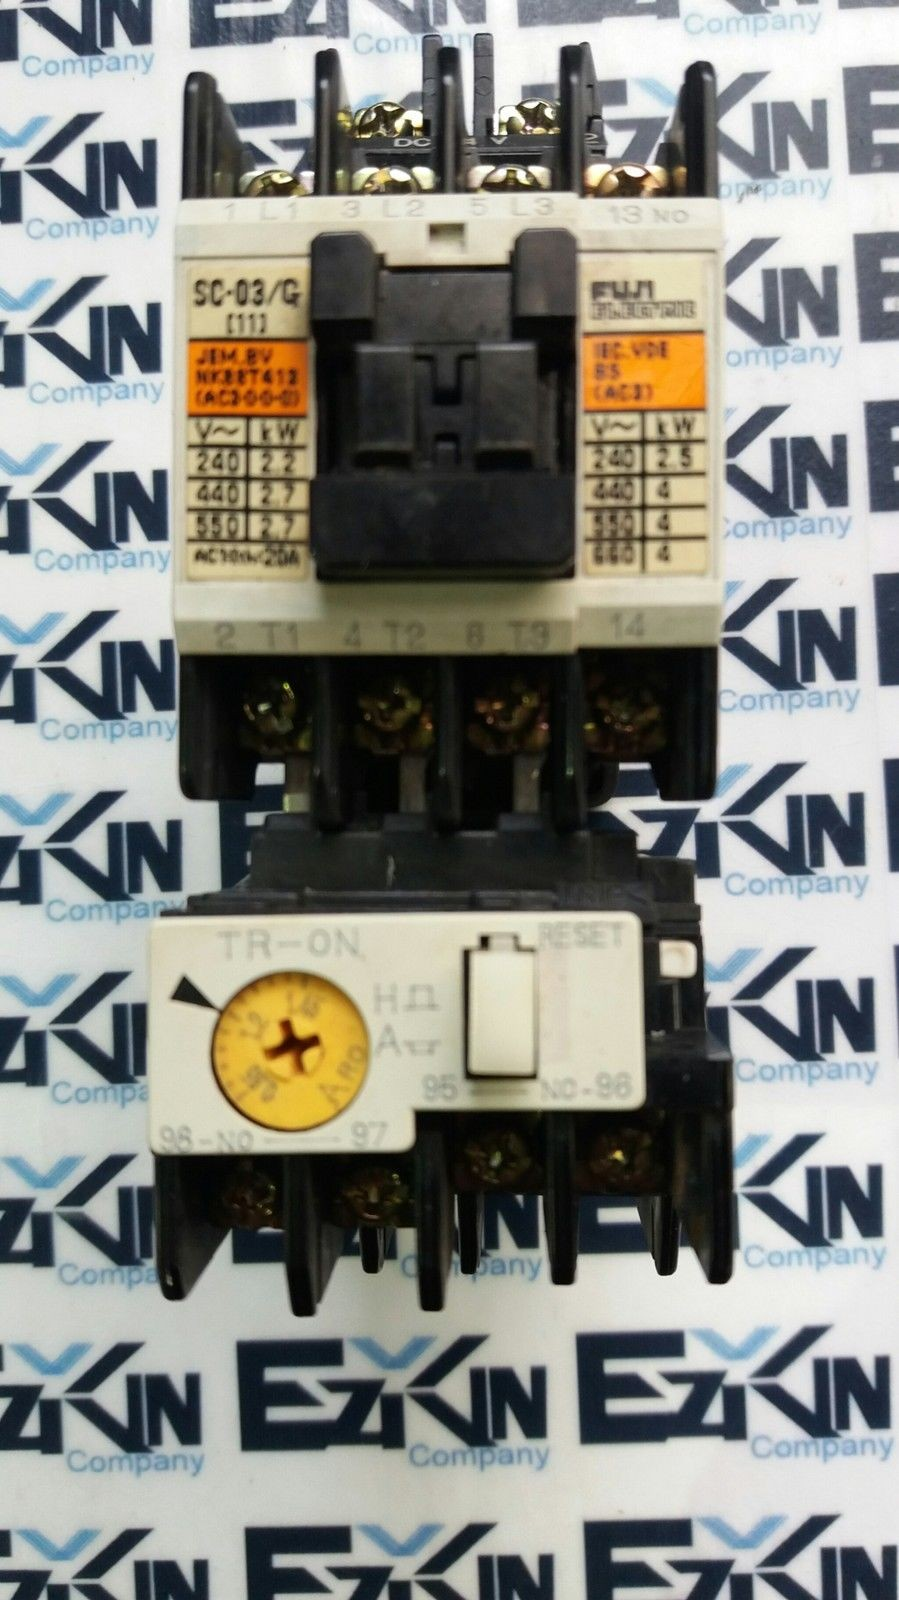 FUJI SC-03/G(11) CONTACTOR W/TR-ON 5-8A OVERLOAD RELAY